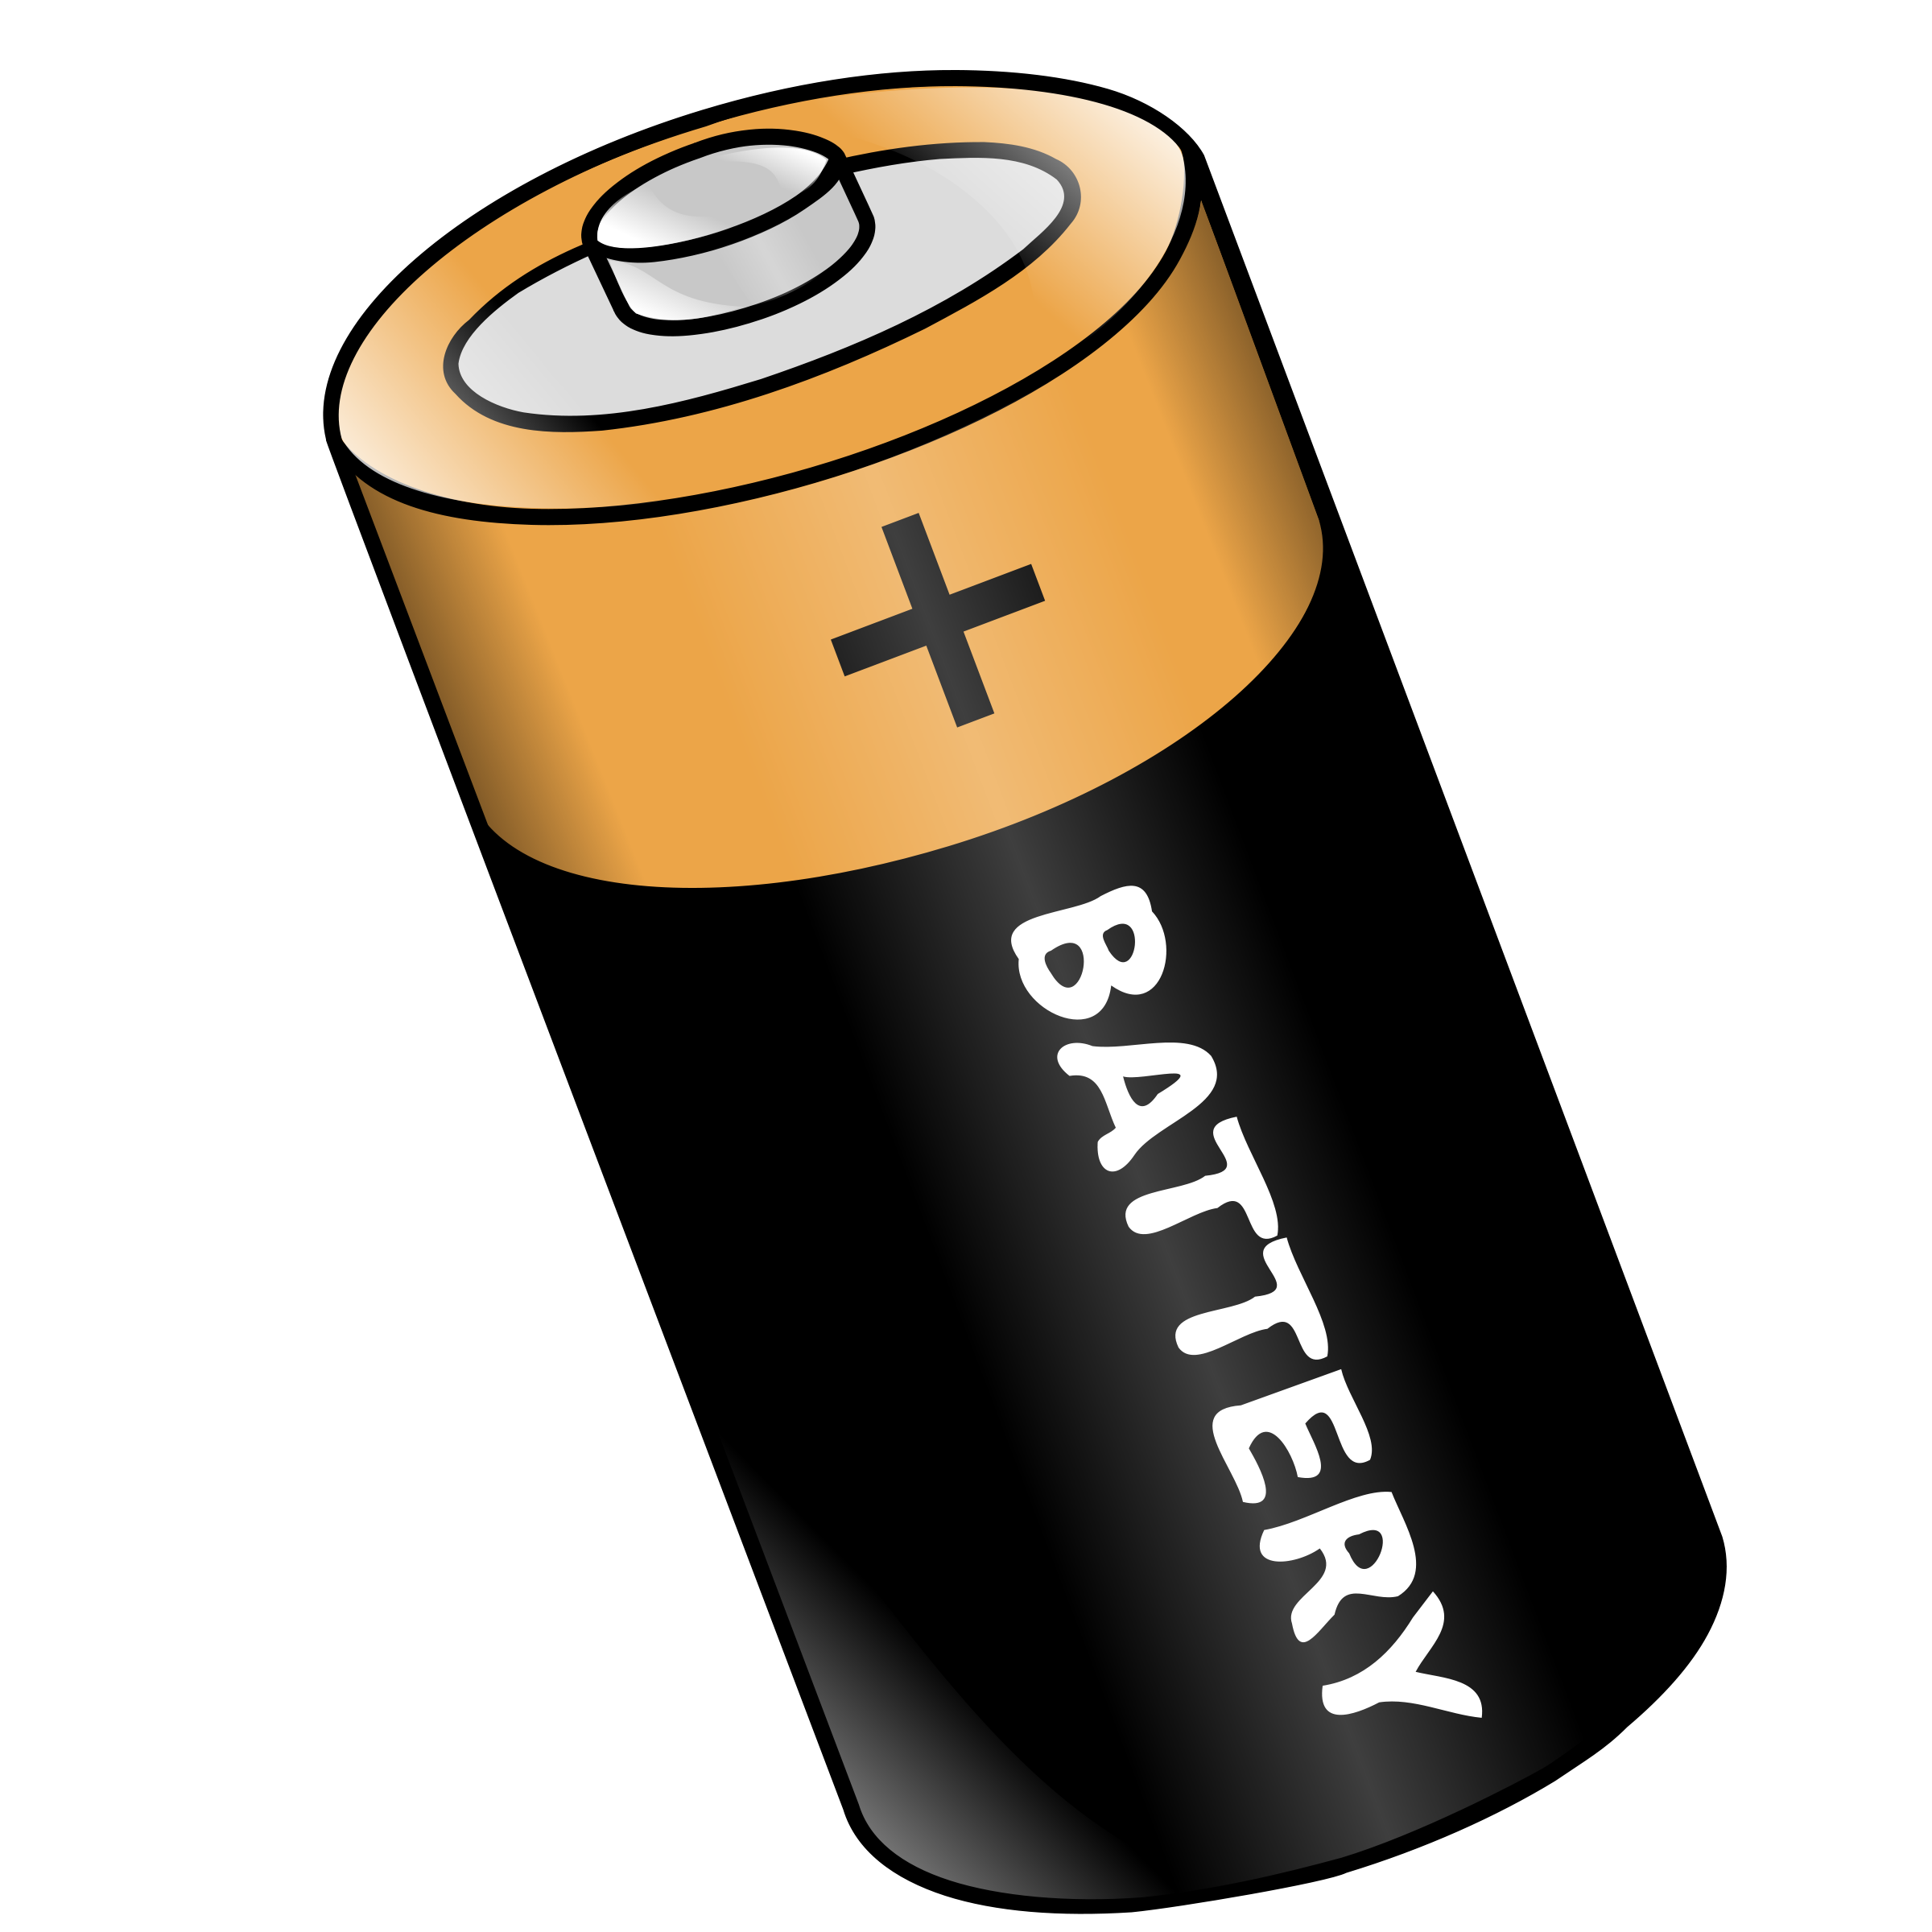 20 Batteries clipart for free download on Premium art themes.